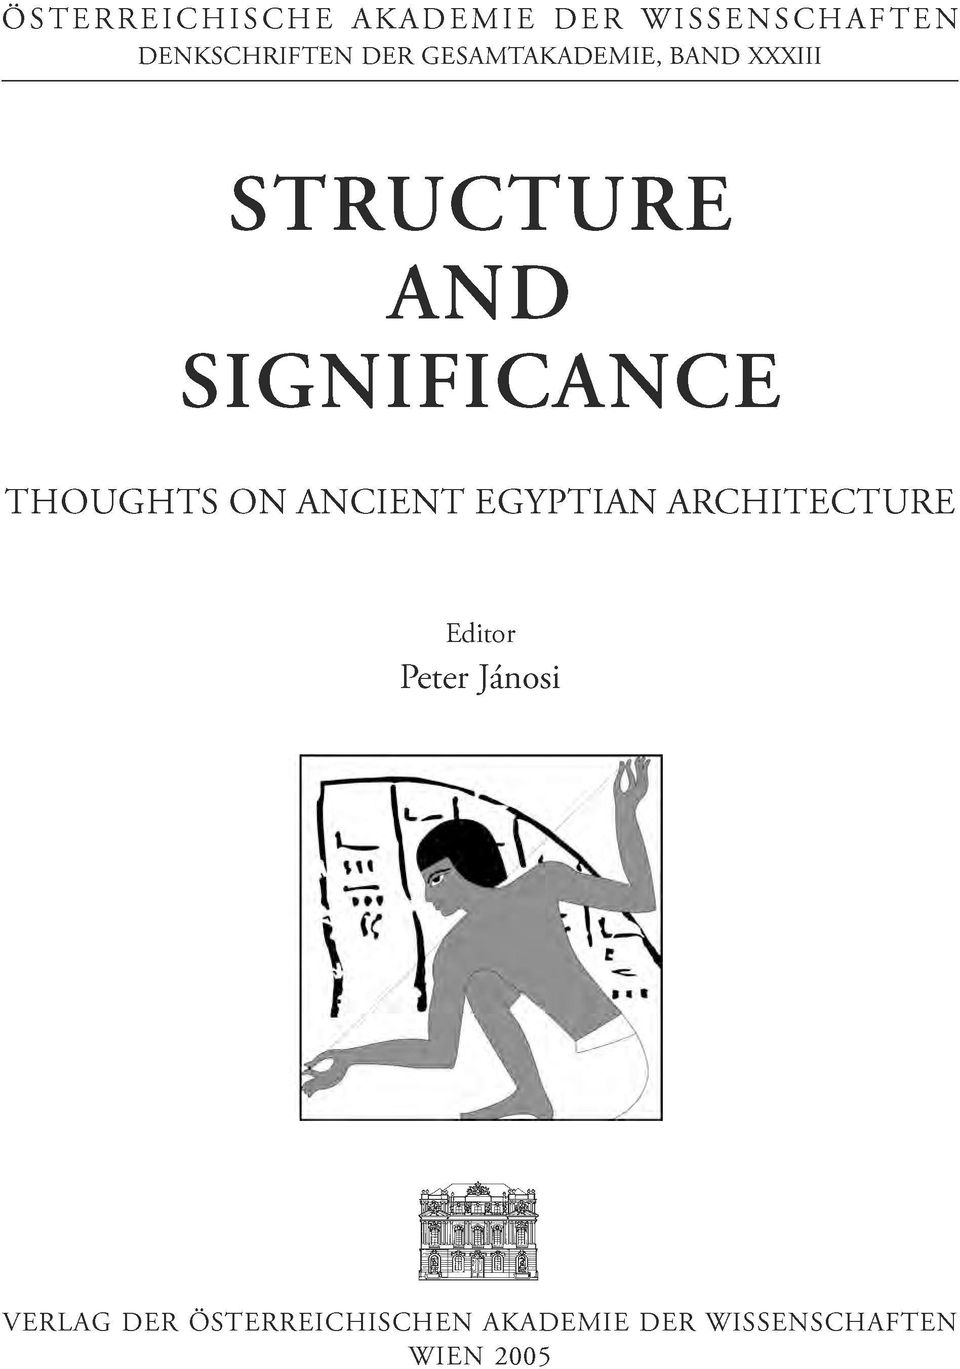 THOUGHTS ON ANCIENT EGYPTIAN ARCHITECTURE Editor Peter